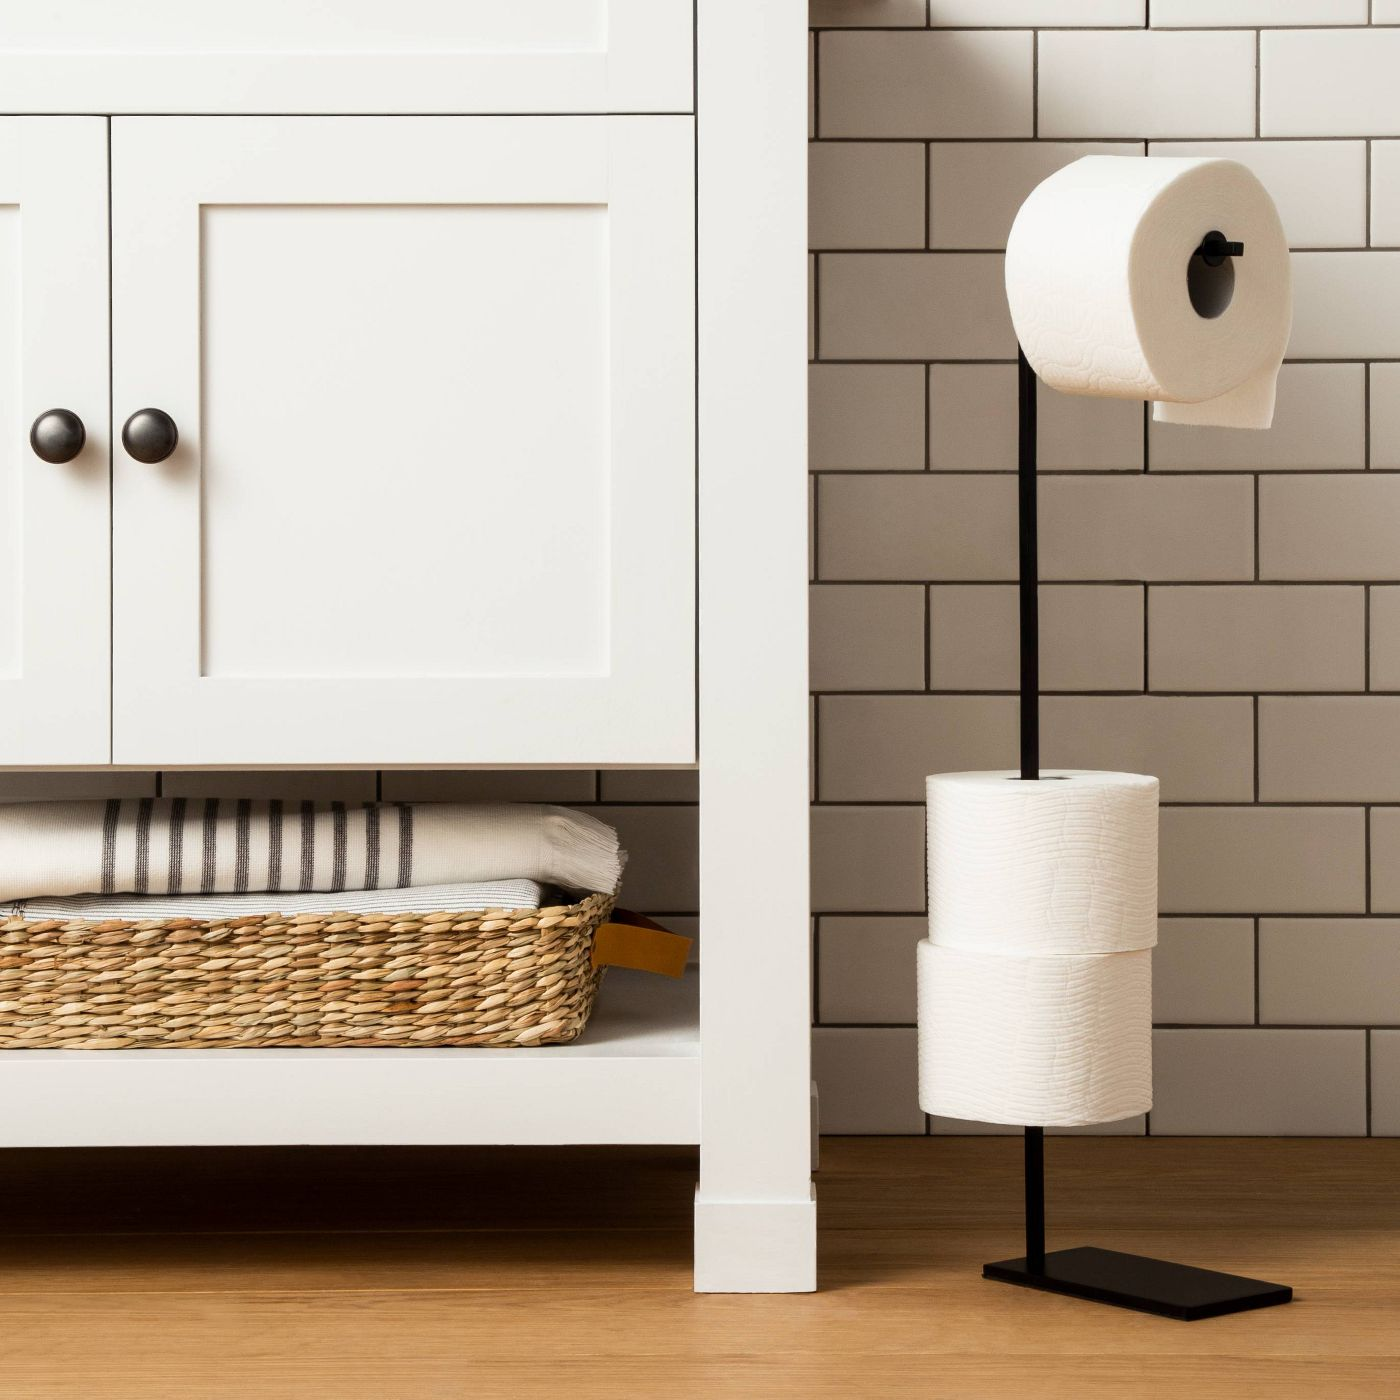 Standing toilet paper holder from Target